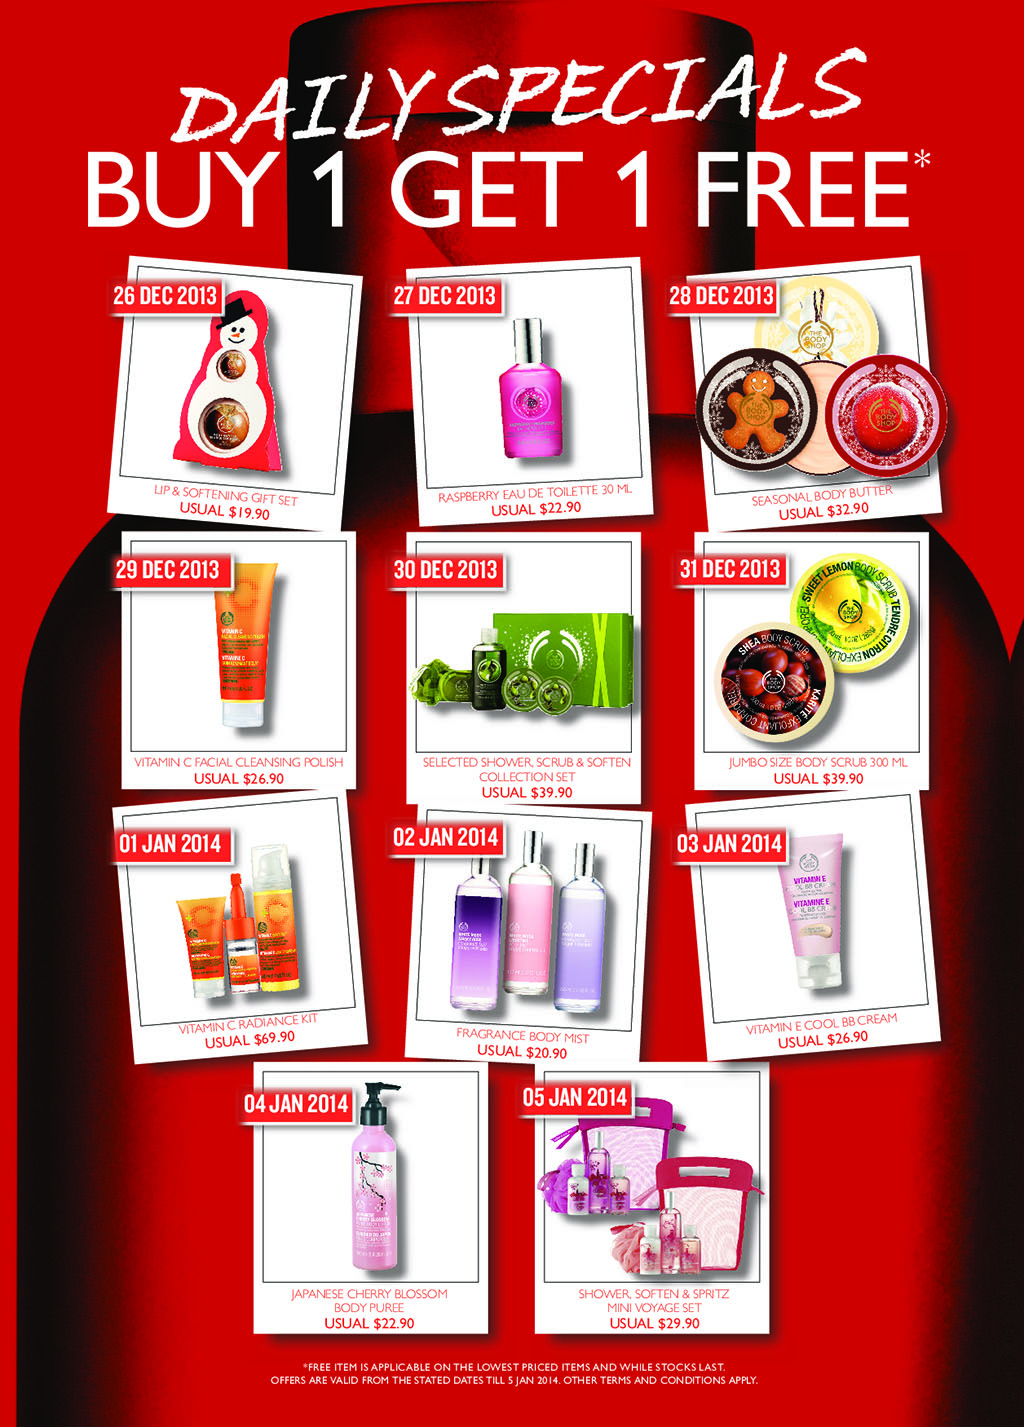 [BOGO] The Body Shop Post Christmas Offer 2013/2014: 1-For-1 Daily Specials On Body Scrubs, Facial Polish & More